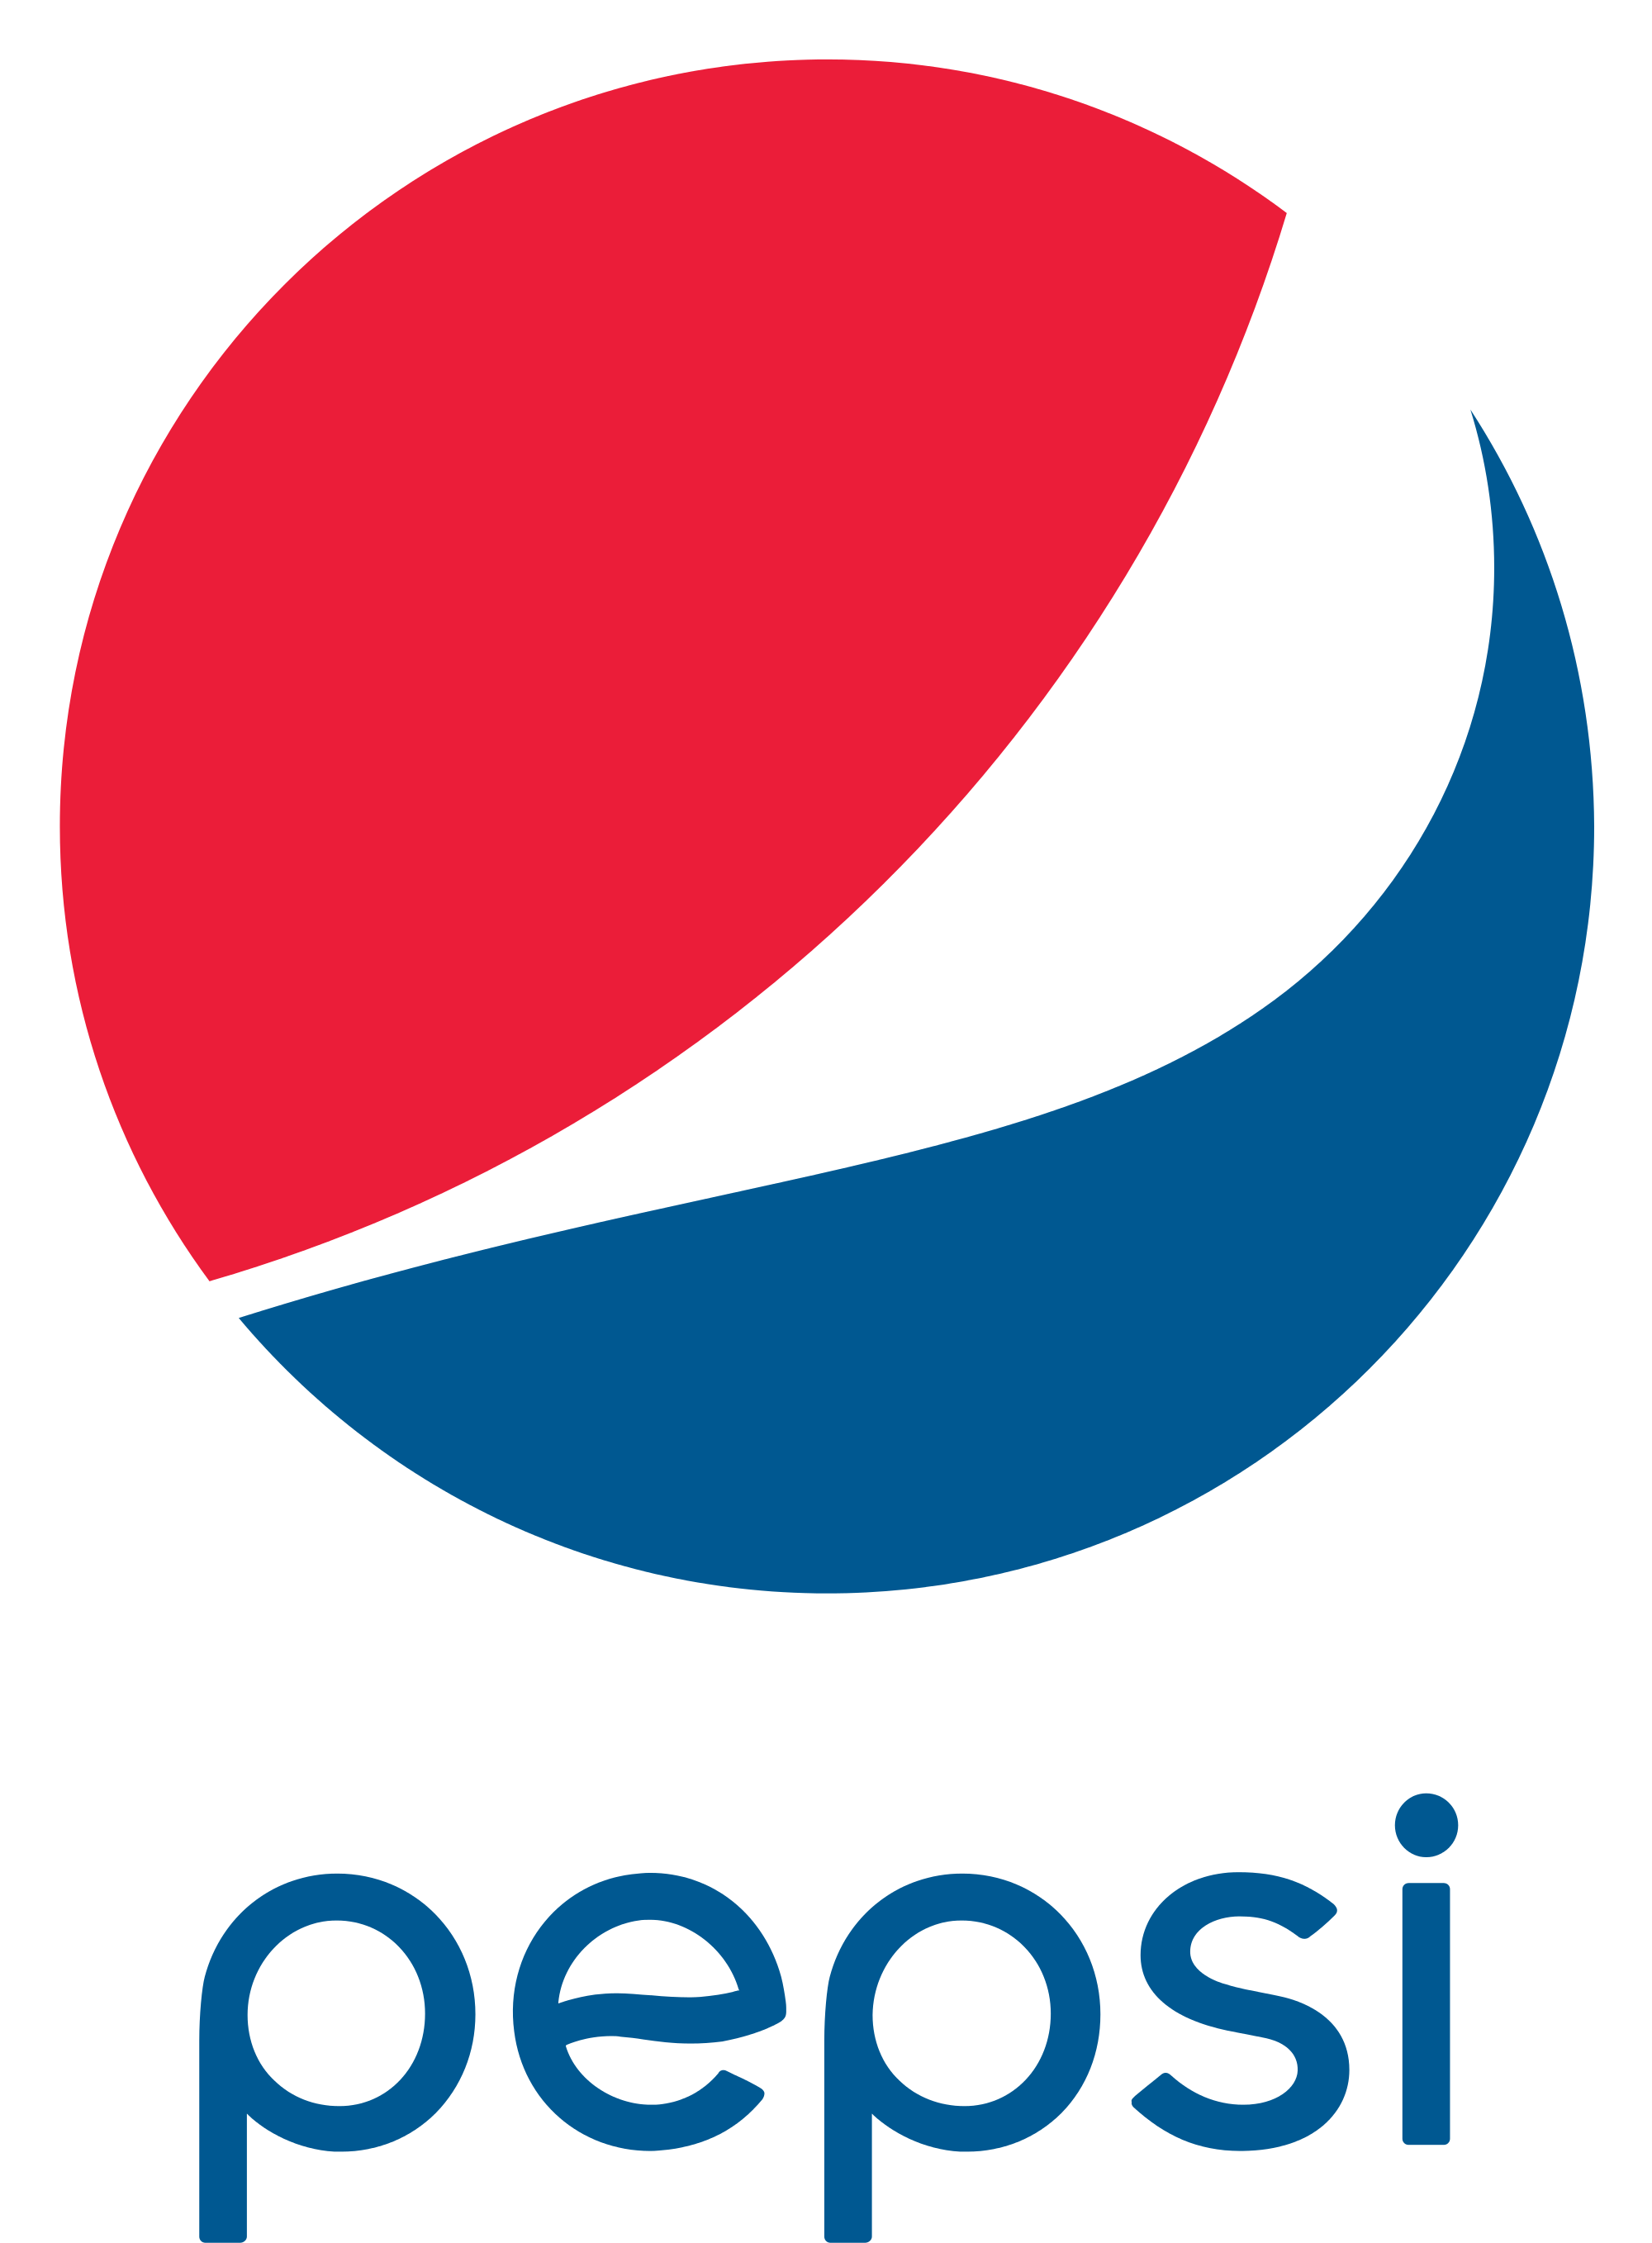 pepsi logo full hd pictures png logo #4254